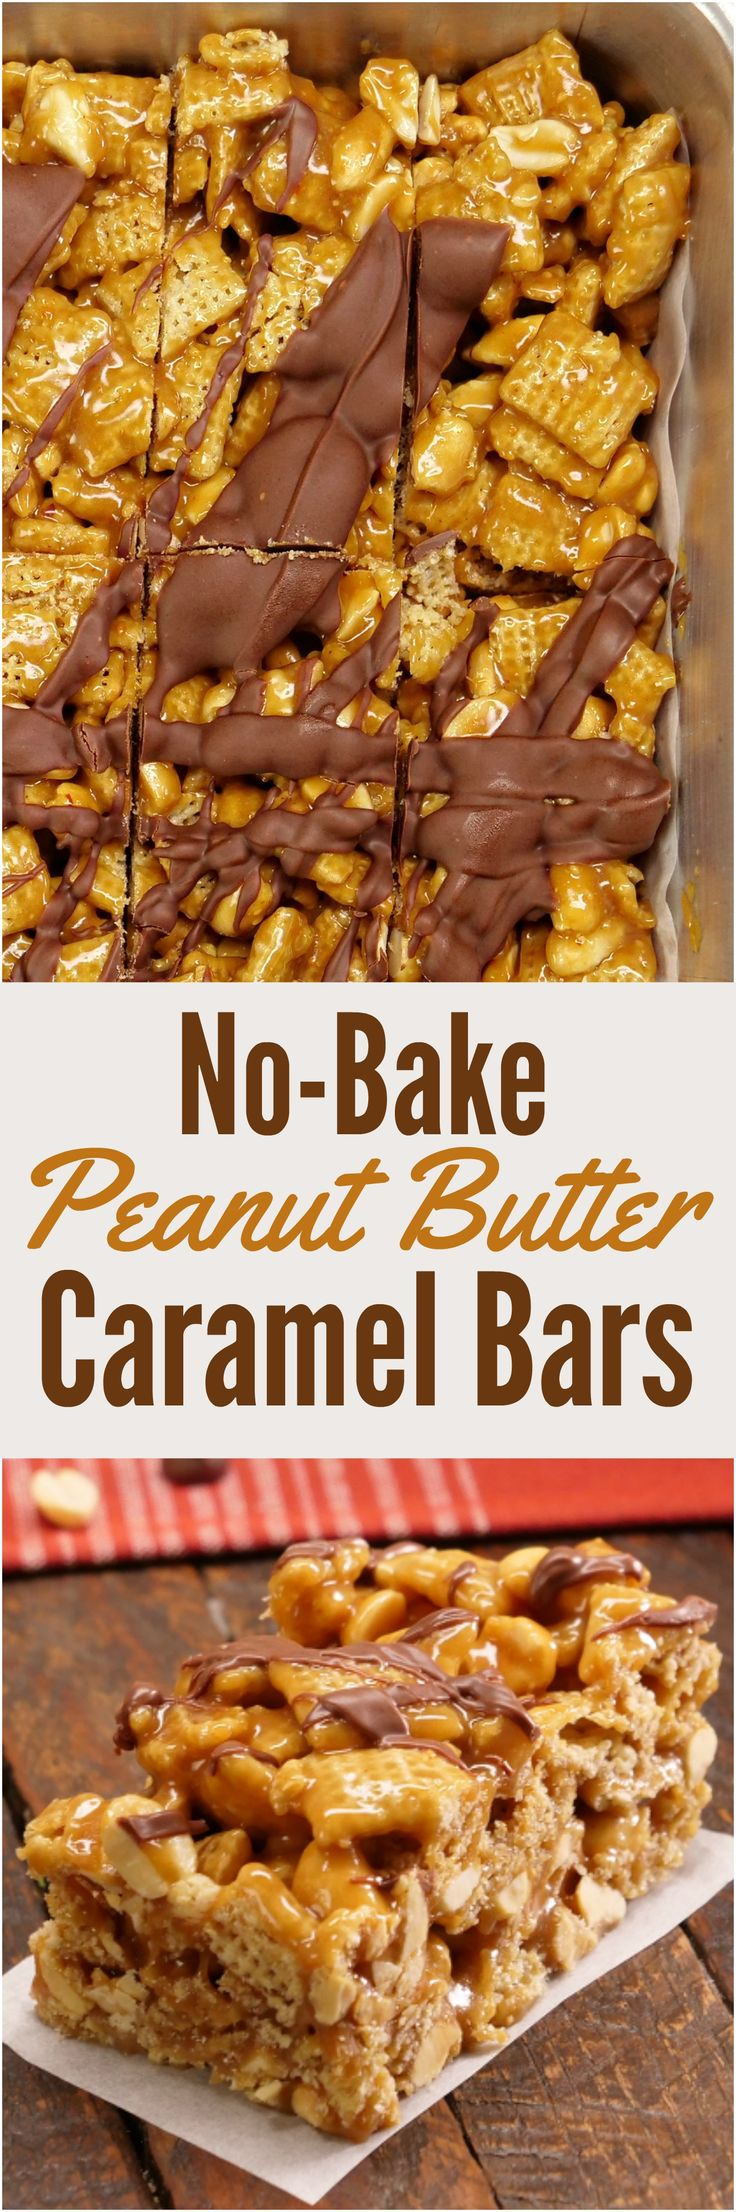 Easy No-Bake Peanut Butter Caramel Bars